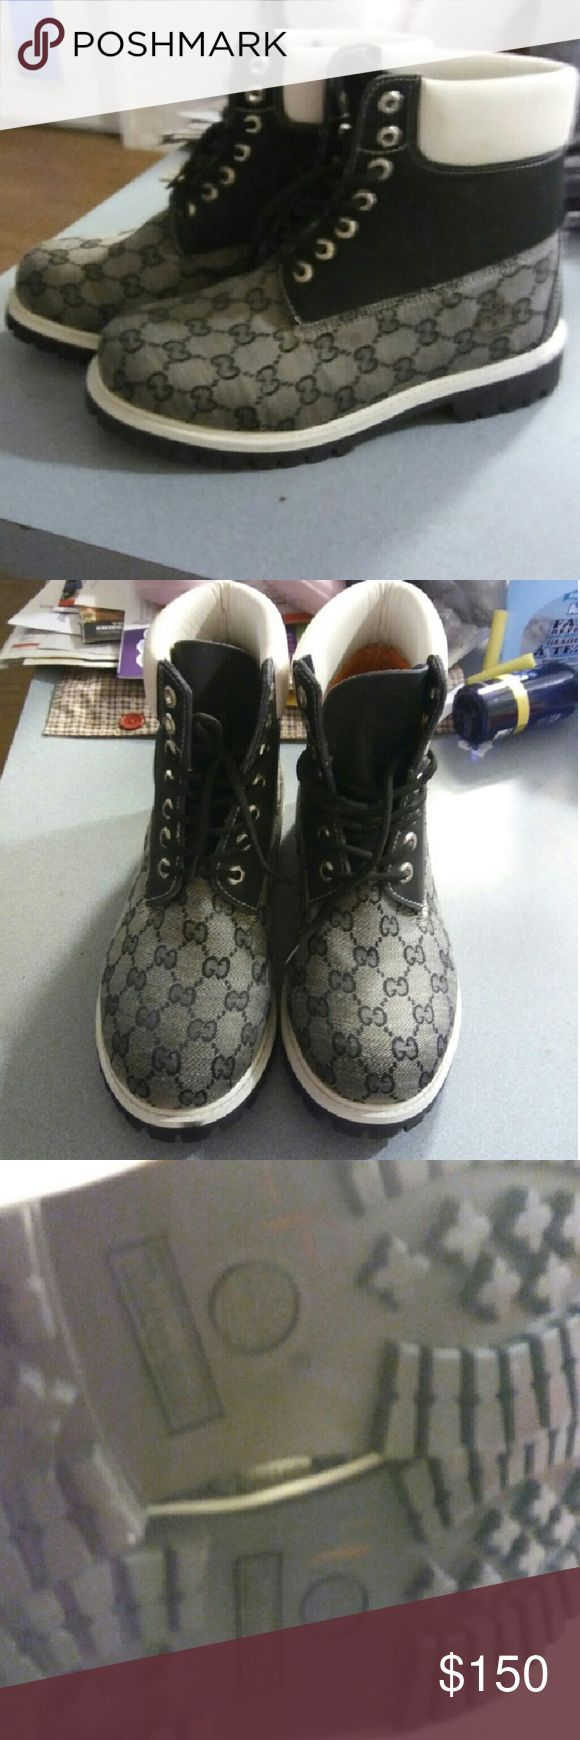 Mens Timberland with Gucci Fabric boots. Sz 8 These were given to me. I don't think these are authentic. I don't know any thing about timberlands. I have compared these with my other timberland mens boots. They don't feel the same. They look alike. But not the same. These are in like new condition. No signs of wear. No scuffing.   Make offer keeping in mind authenticity. Marked high to save on shipping.   These will fit a ladies 10. Timberland Shoes Ankle Boots & Booties